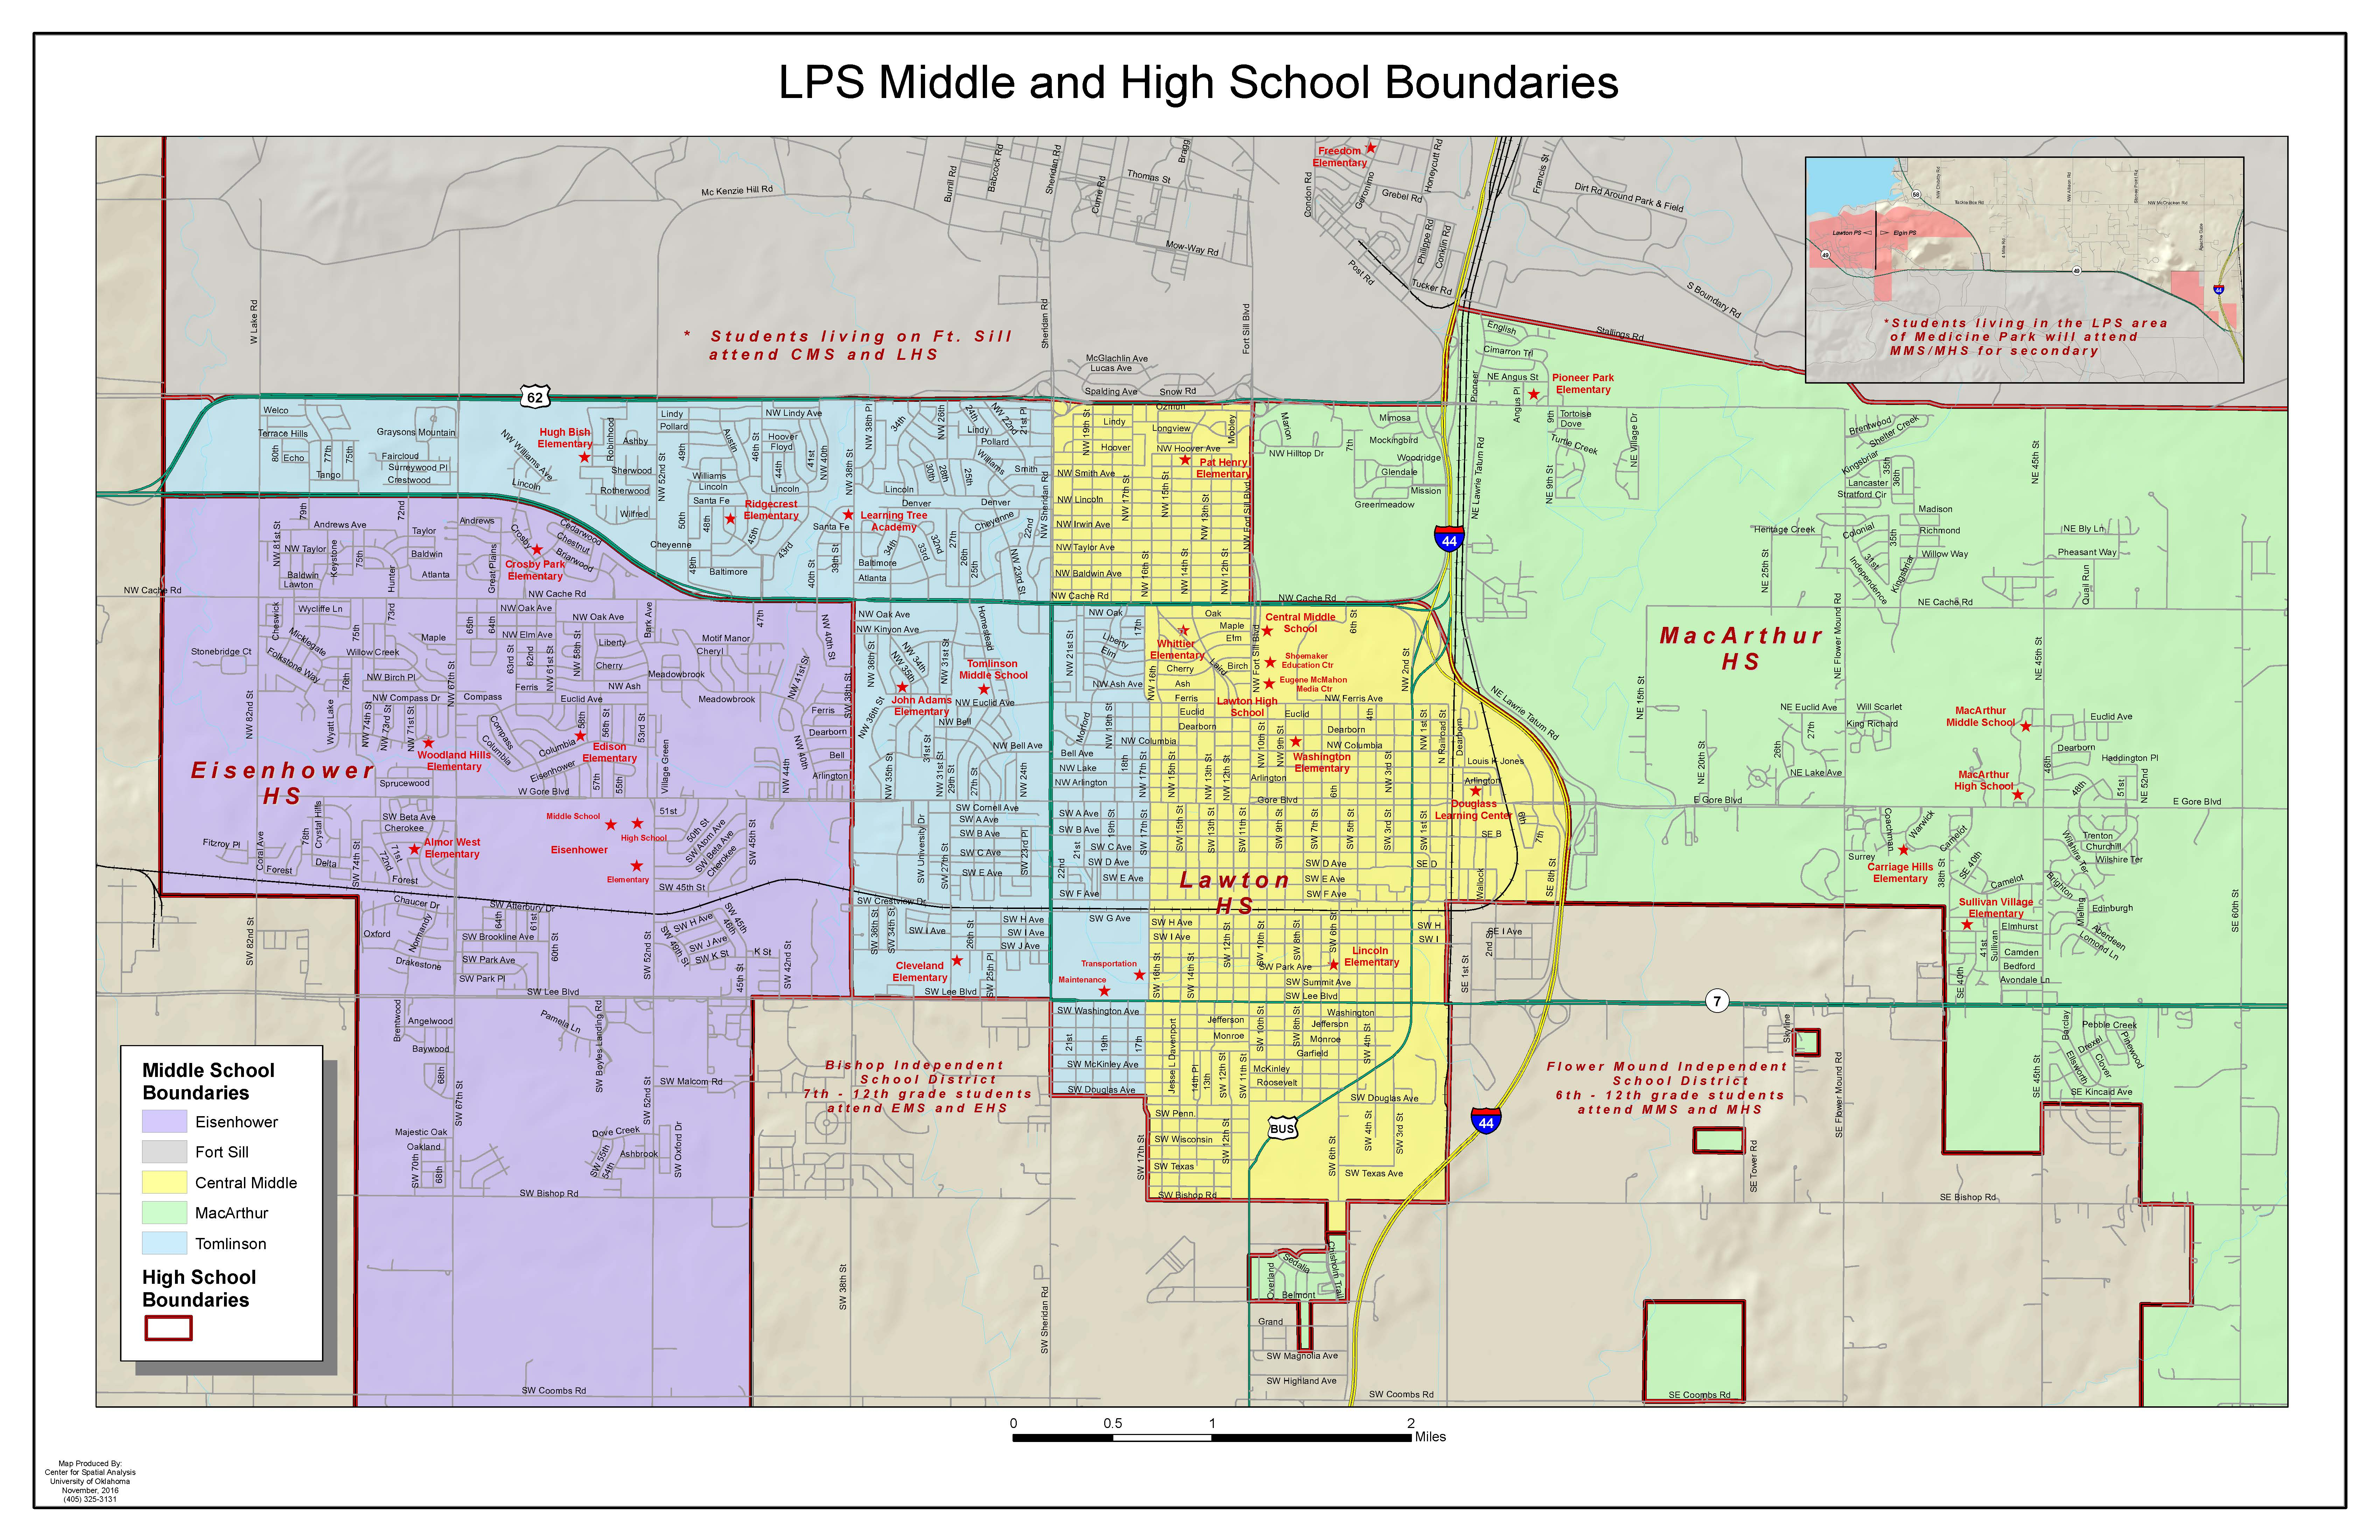 LPS Middle and High School Boundaries